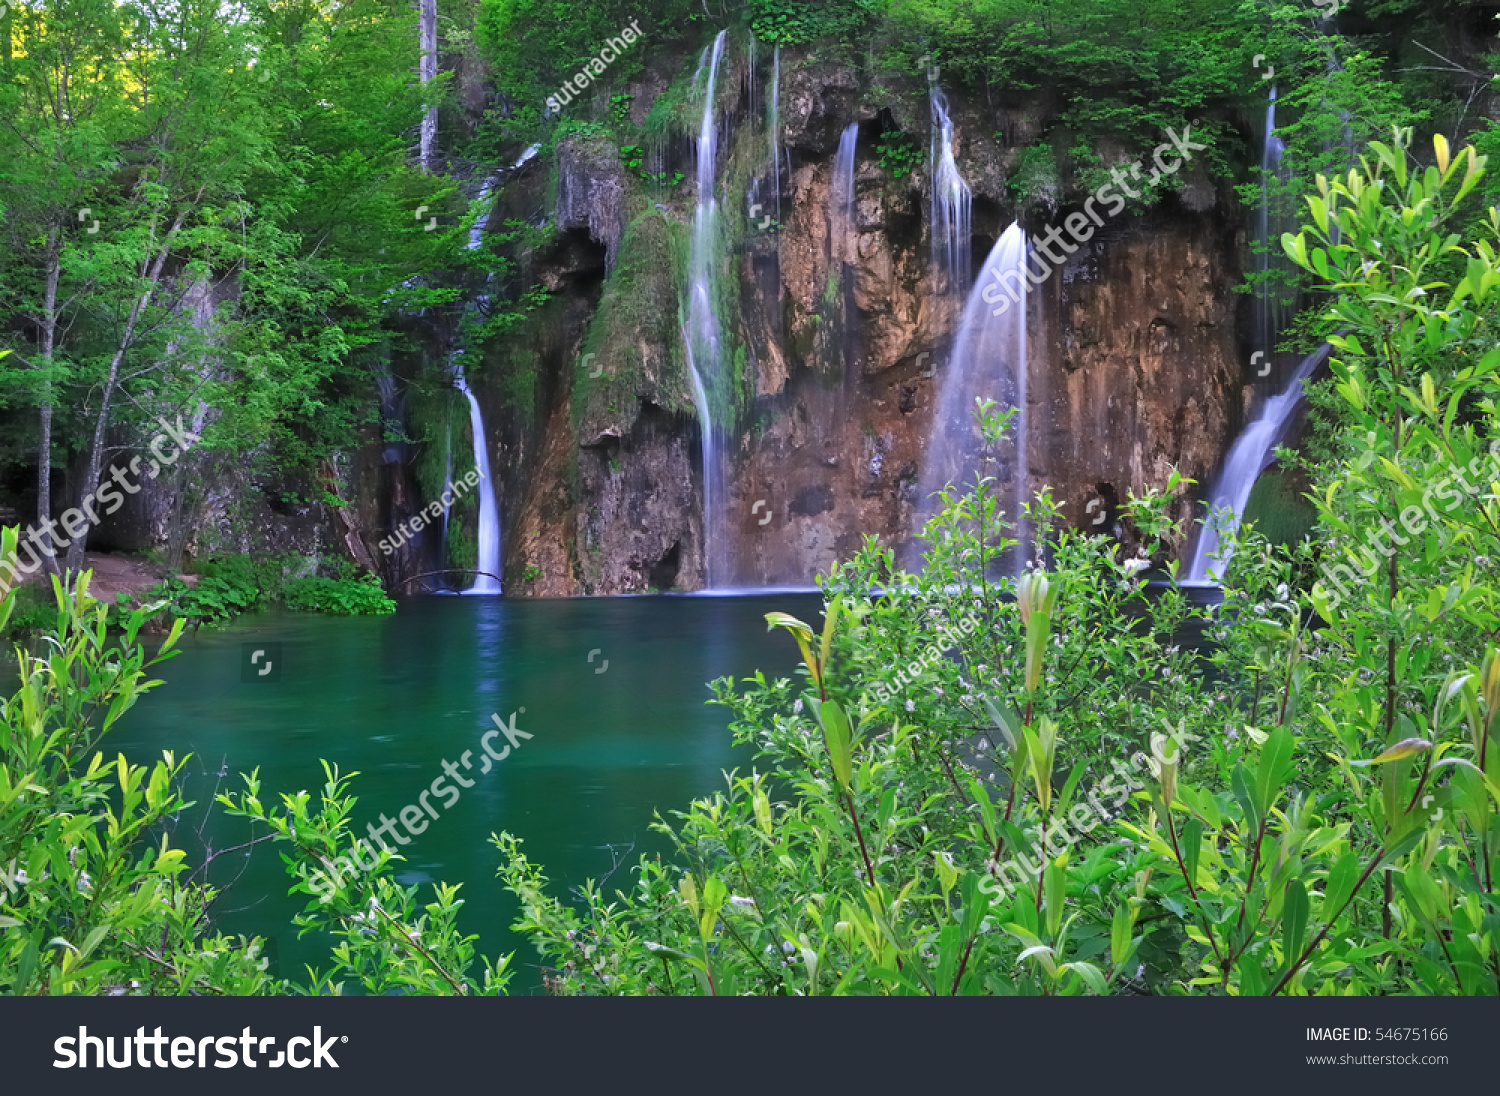 Beautiful waterfall in thailand s erawan waterfalls national park - In Midst Of A Forest Waterfalls Flow Into A Natural Pool